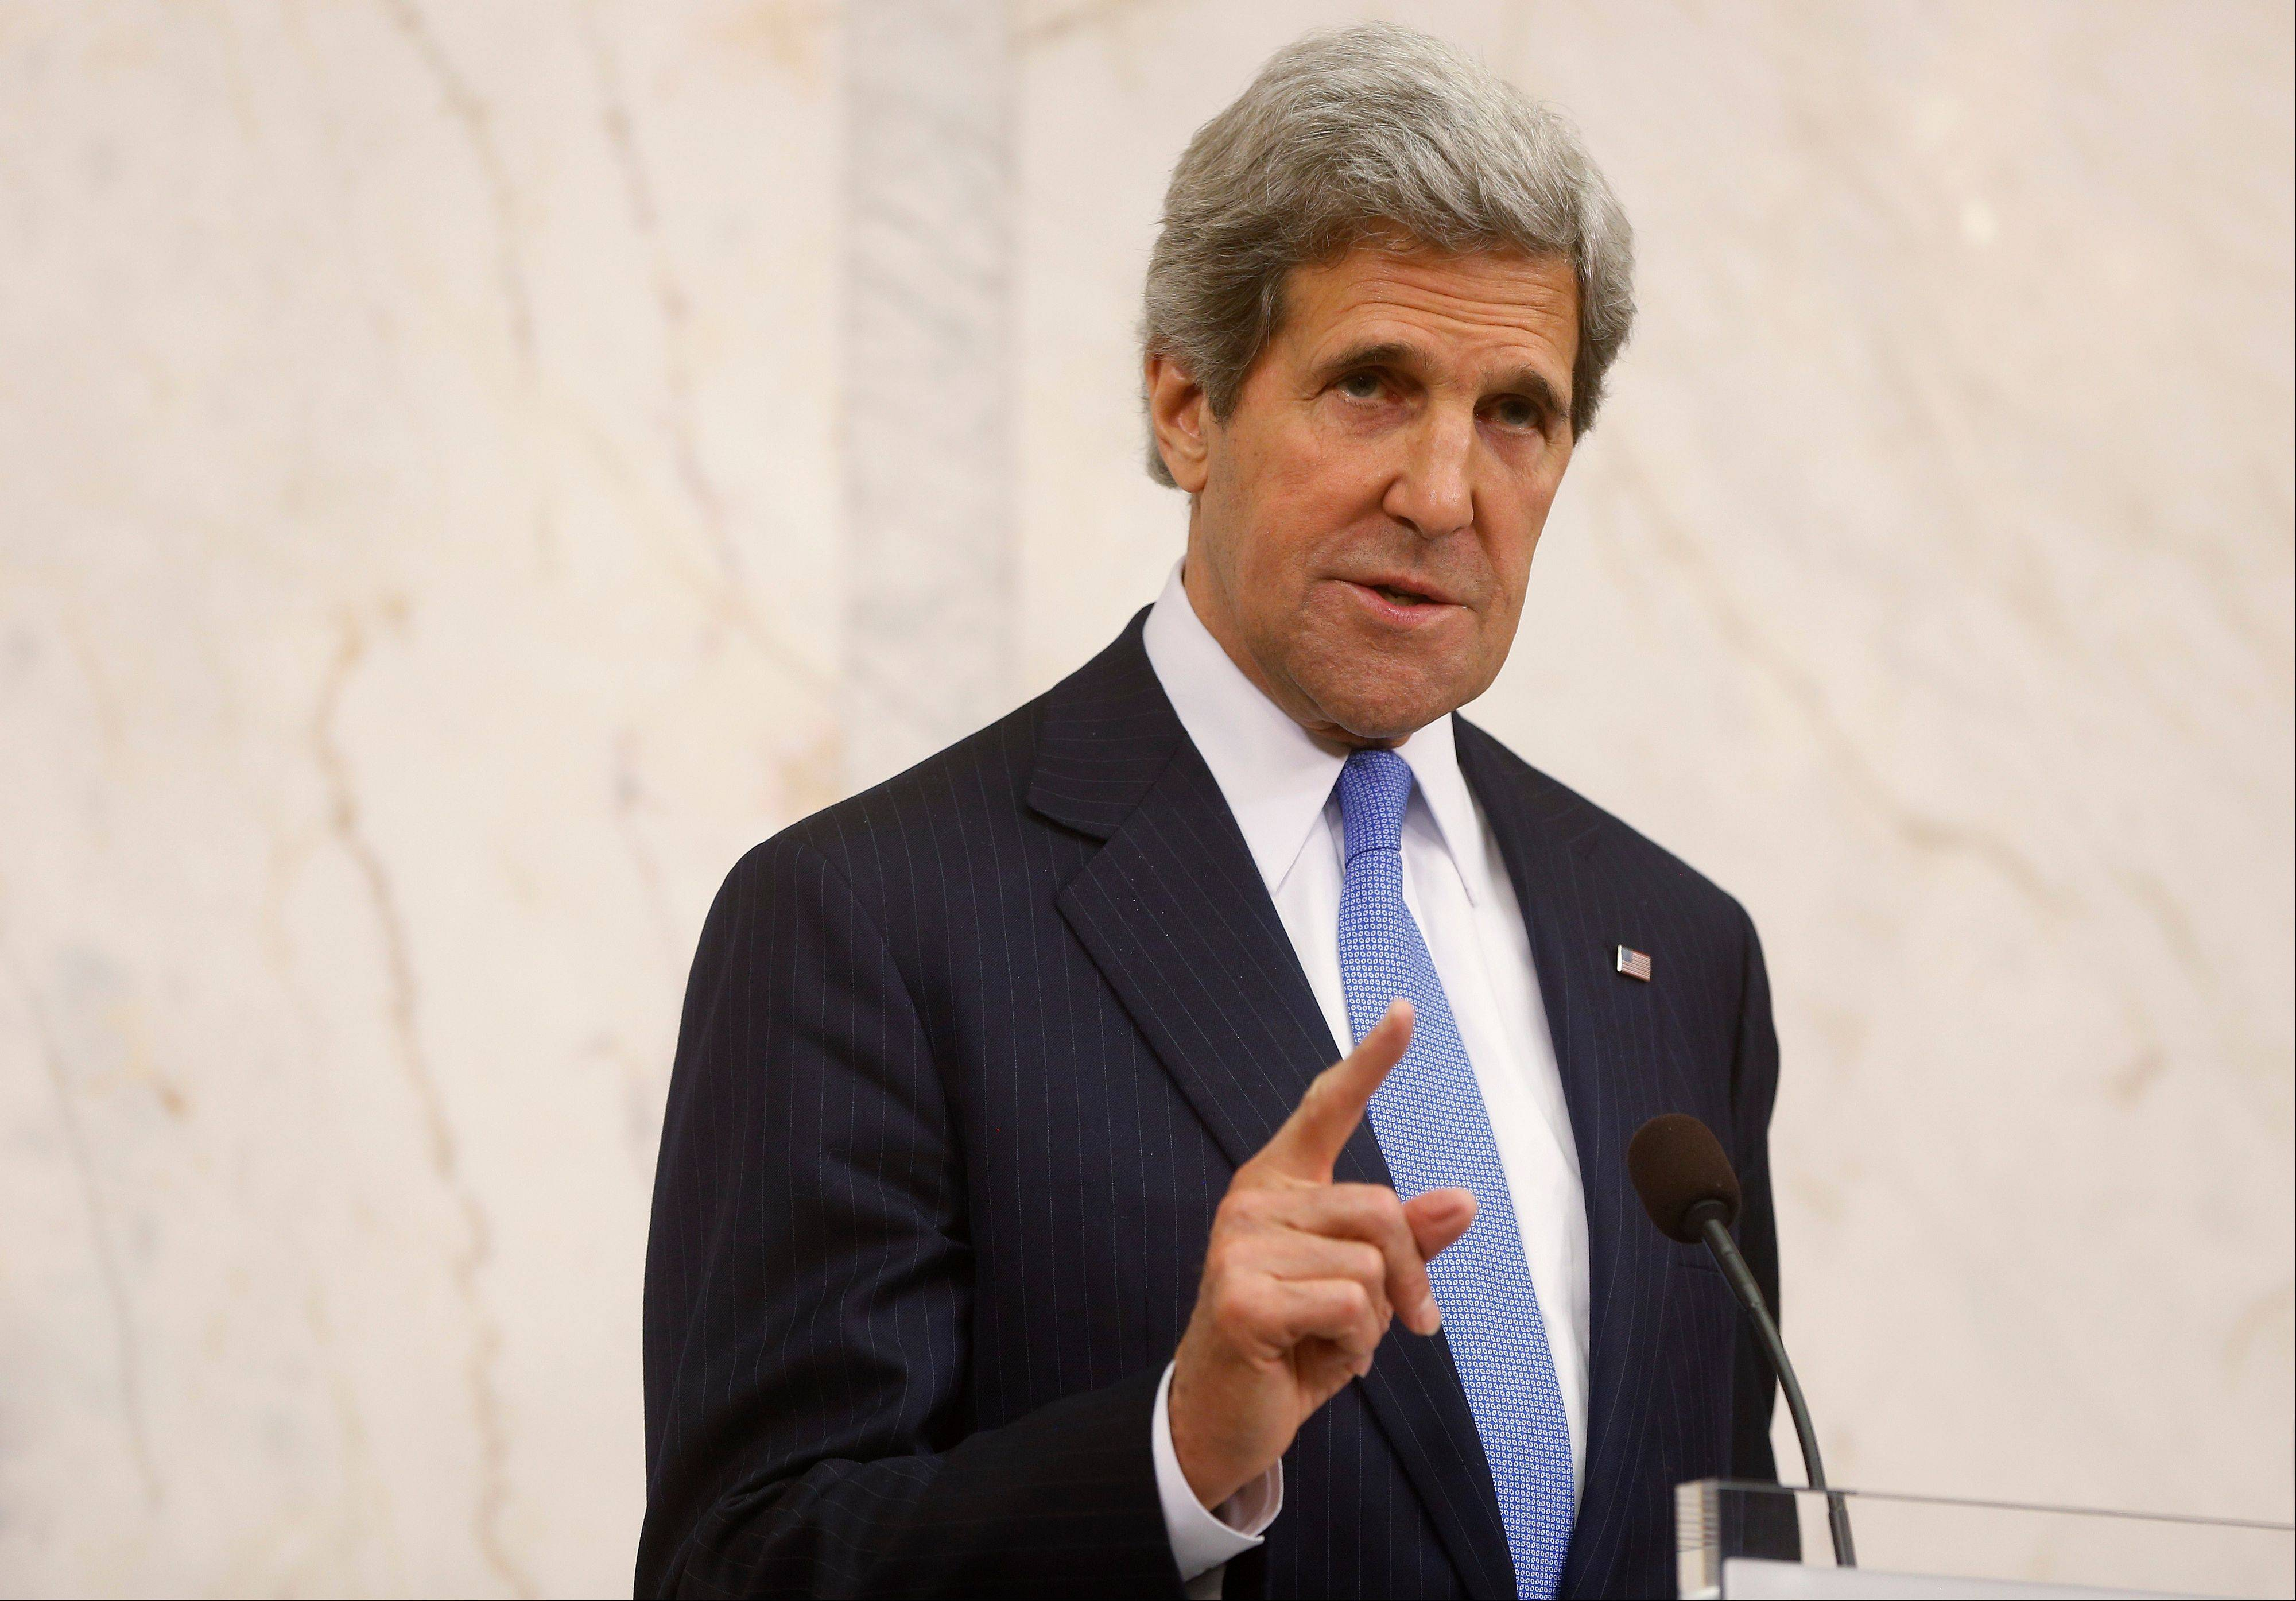 U.S. Secretary of State John Kerry issued a stern warning Tuesday to Syria�s government, saying that new help will be given to opposition forces should President Bashar Assad�s regime decide to back out of upcoming negotiations aimed at ending Syria�s two-year war.